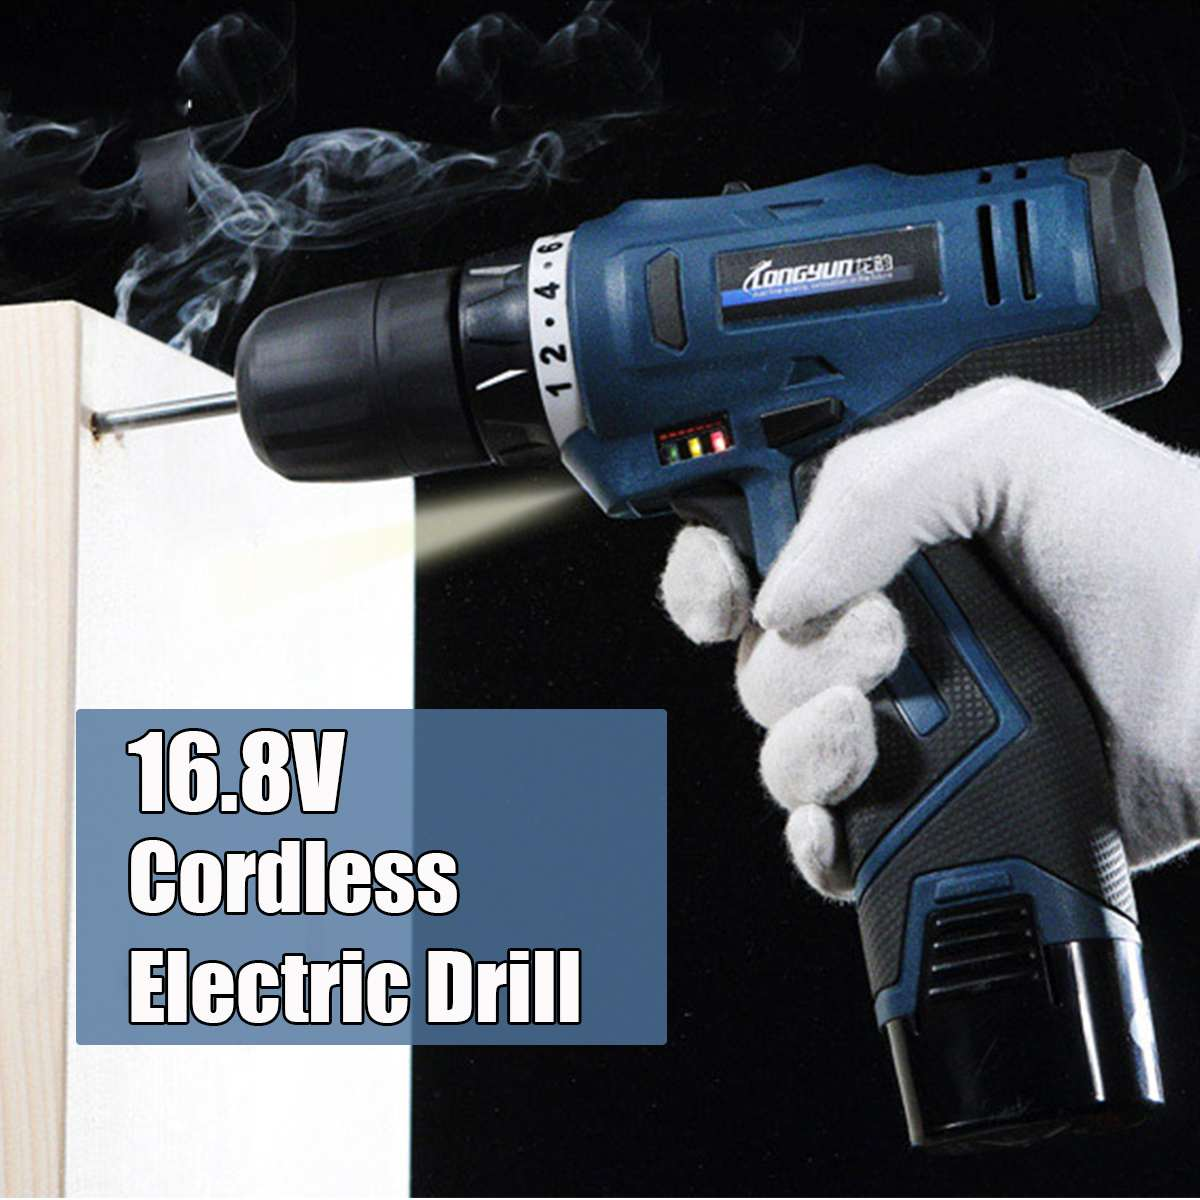 16.8V Li-ion Cordless Electric Drill Screwdriver Hammer Drill Driver Hand Kit Lithium-Ion Battery 2-Speed LED16.8V Li-ion Cordless Electric Drill Screwdriver Hammer Drill Driver Hand Kit Lithium-Ion Battery 2-Speed LED